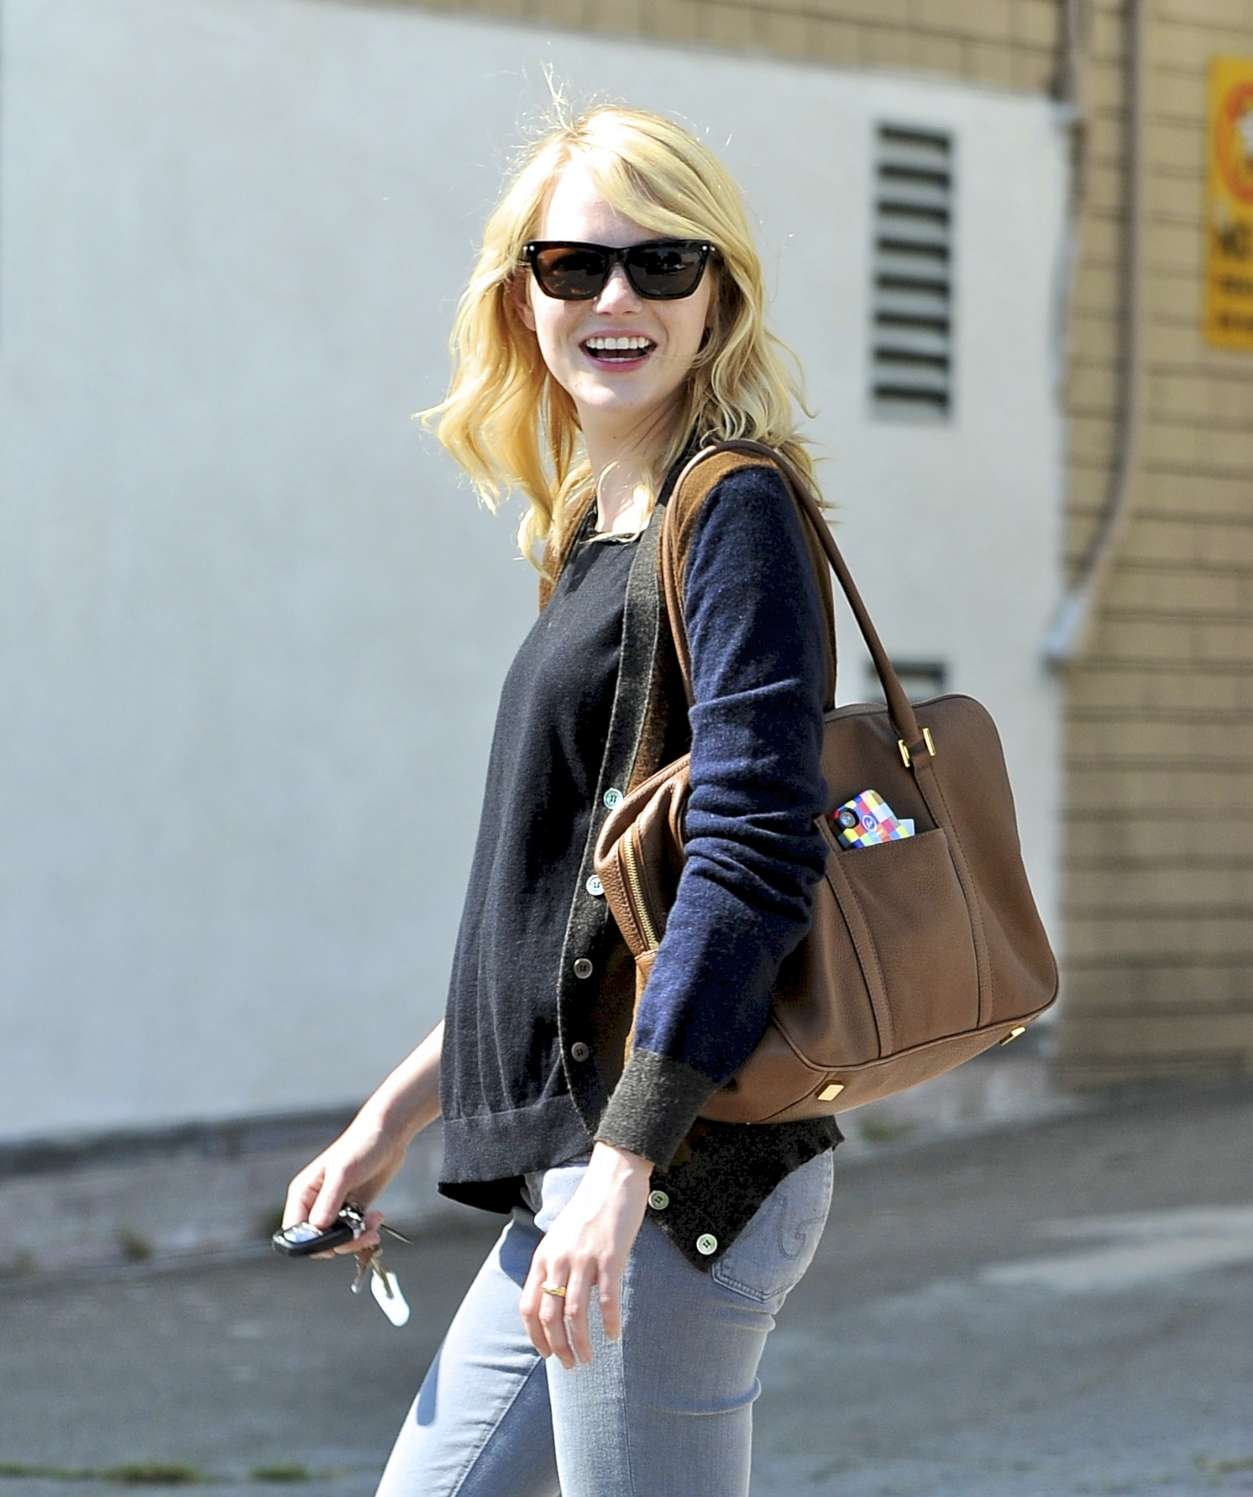 Emma Stone Smiling Picture in Jeans 7